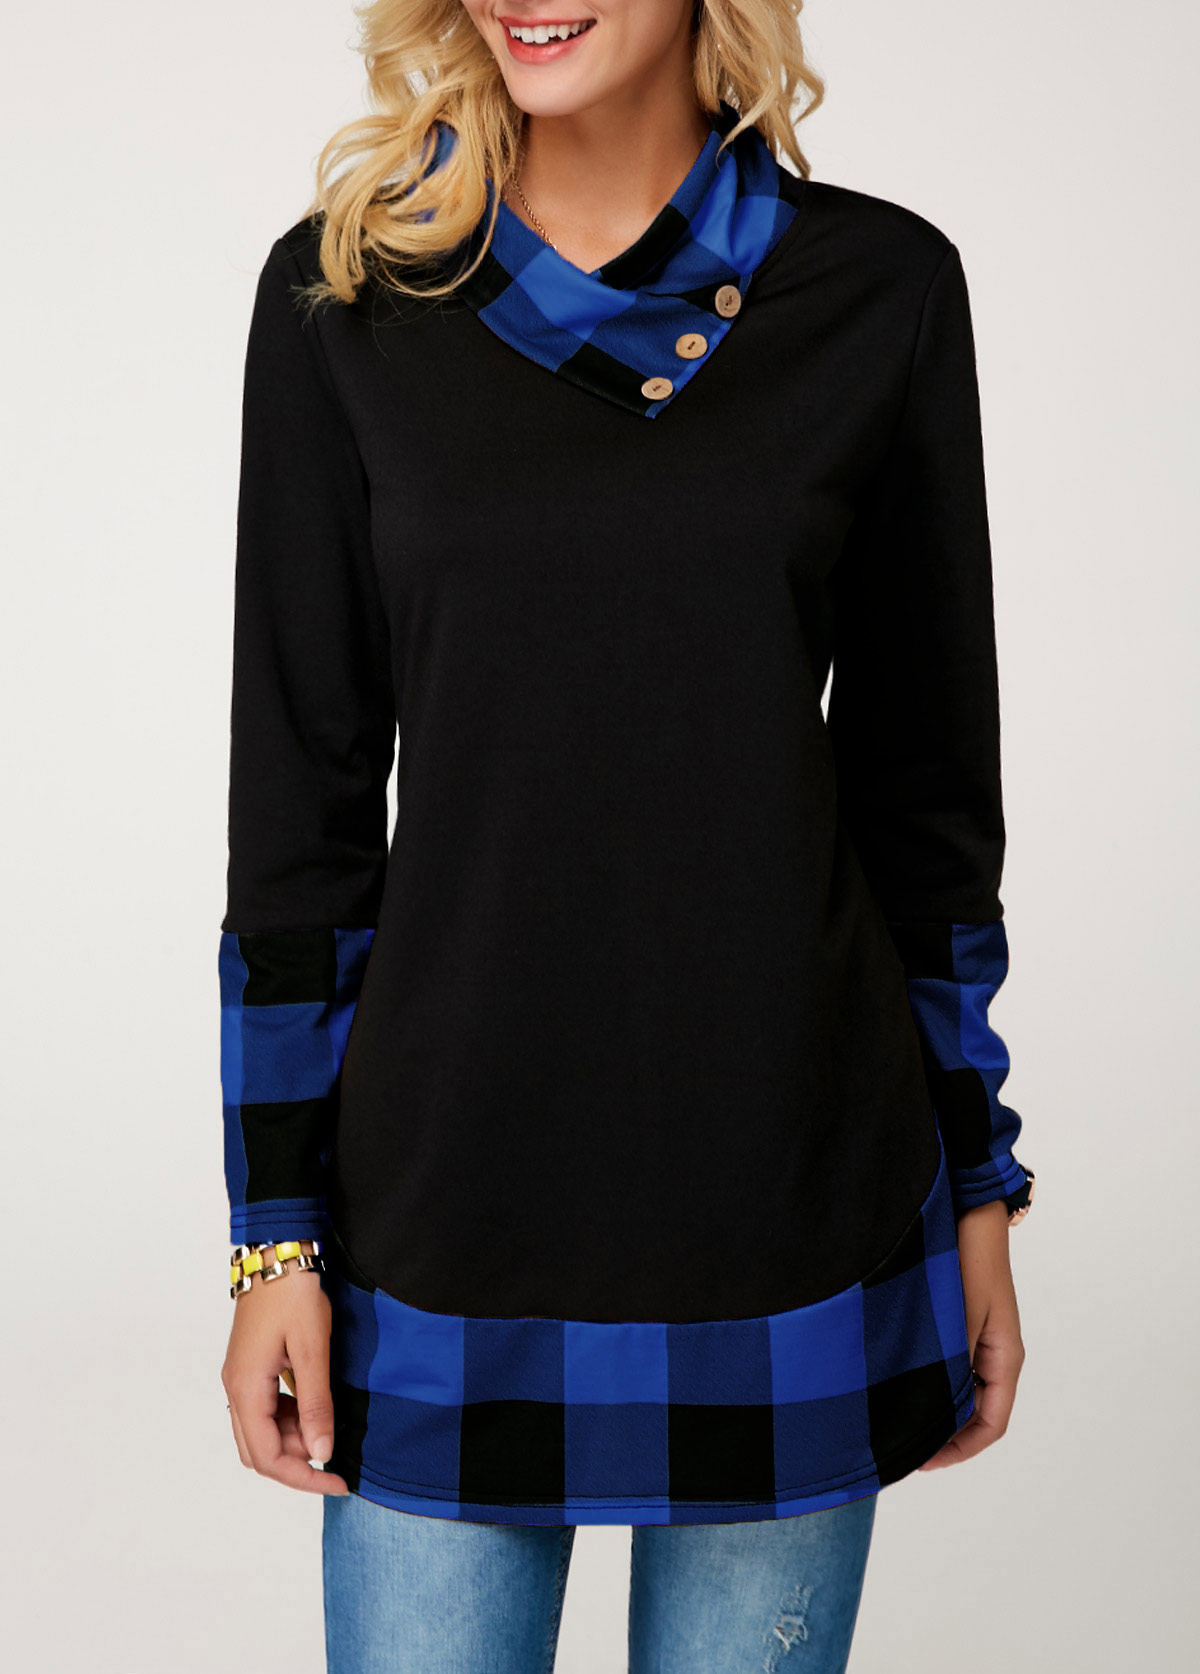 Plaid Print Long Sleeve T Shirt